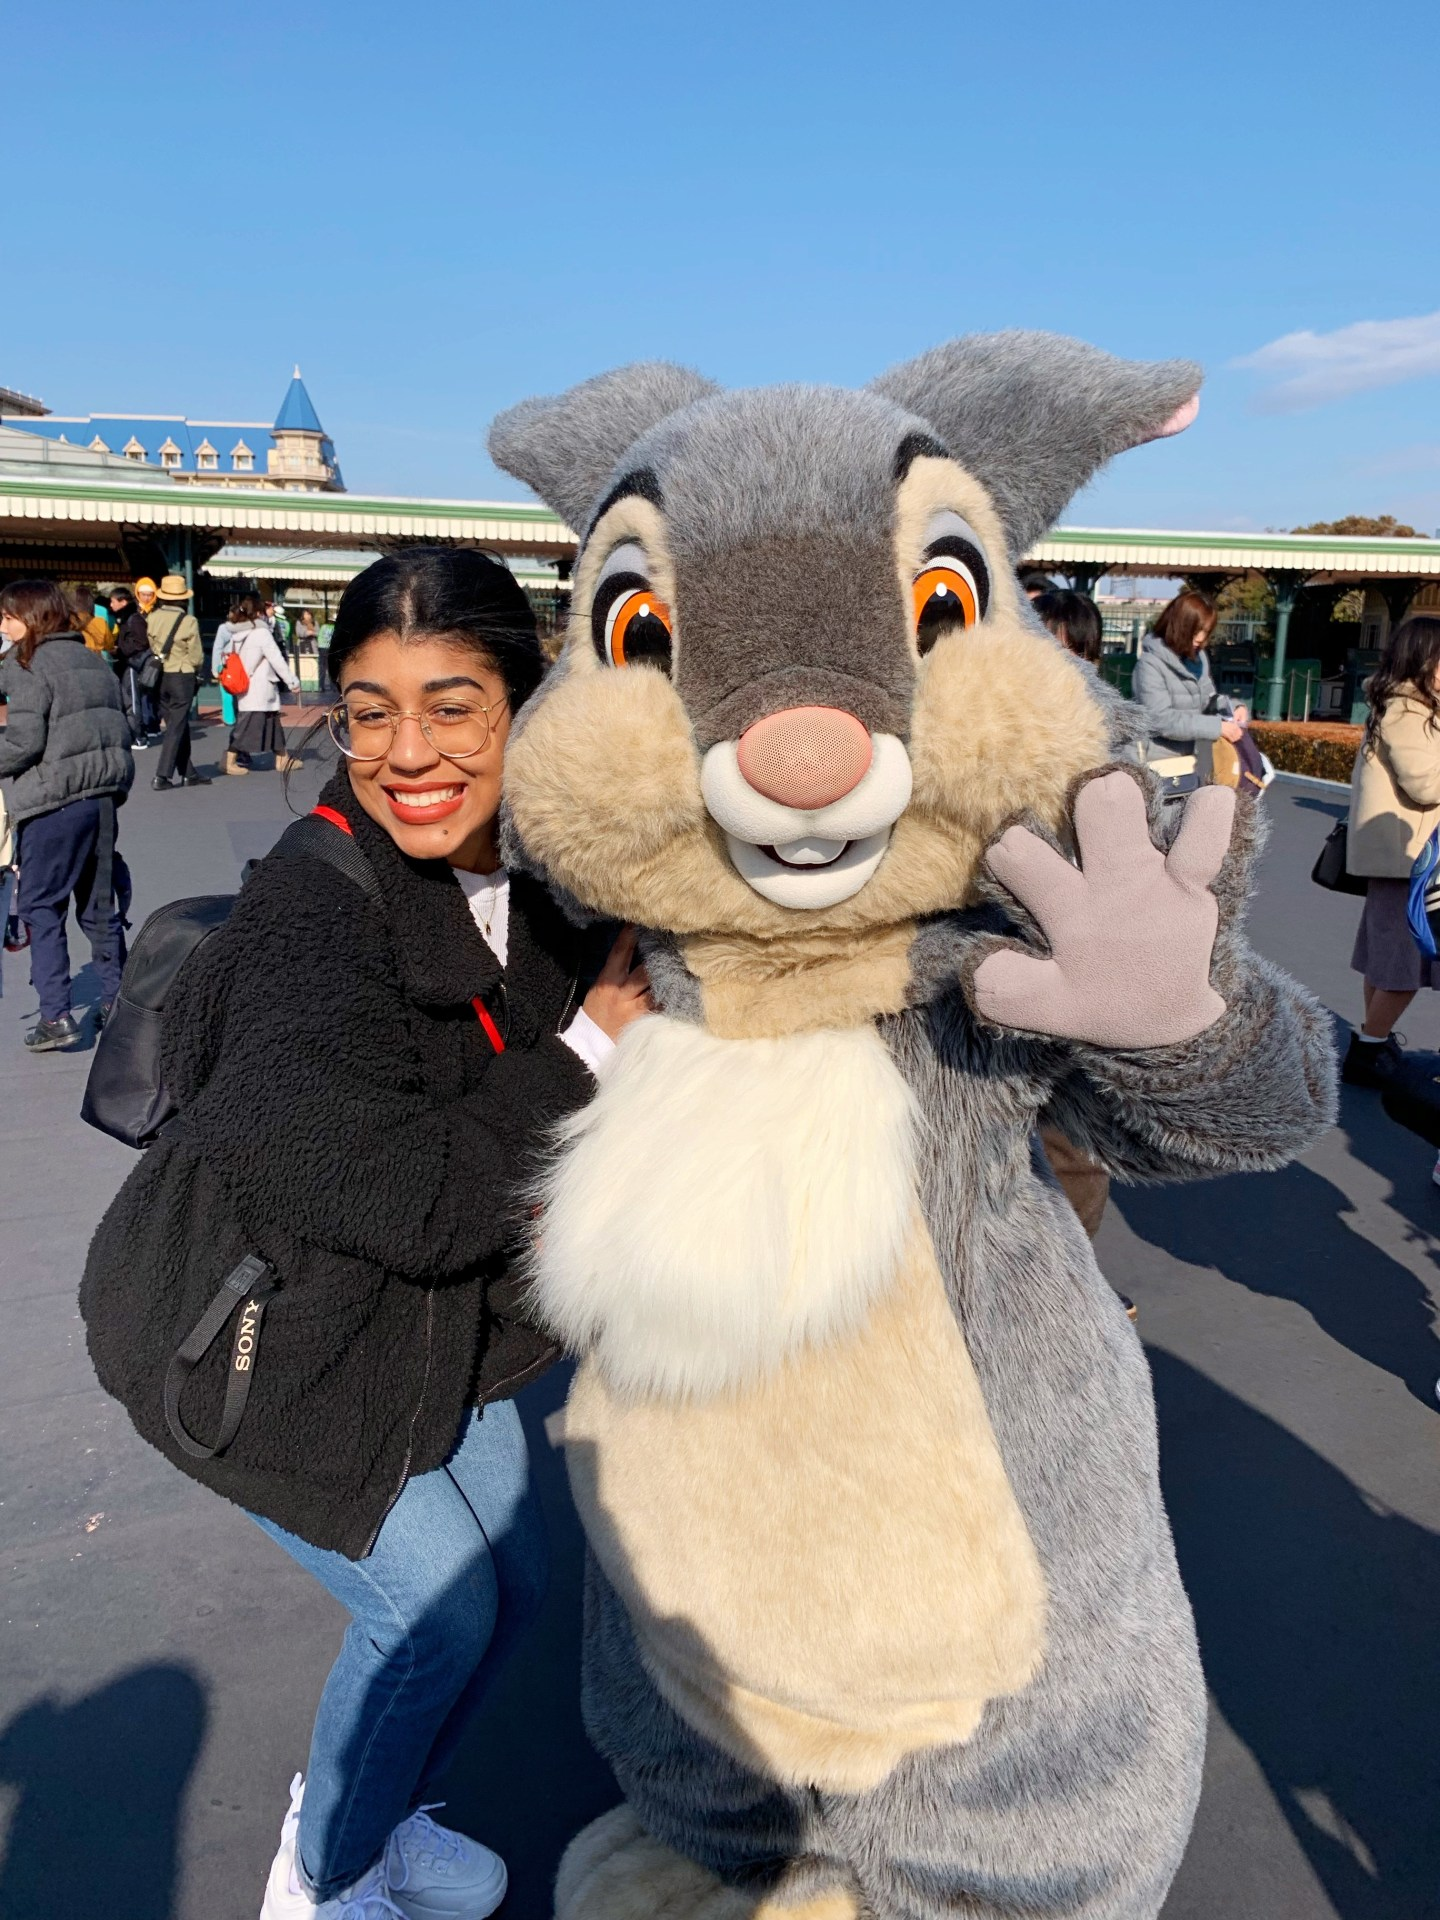 Woman with rabbit character at Tokyo Disney